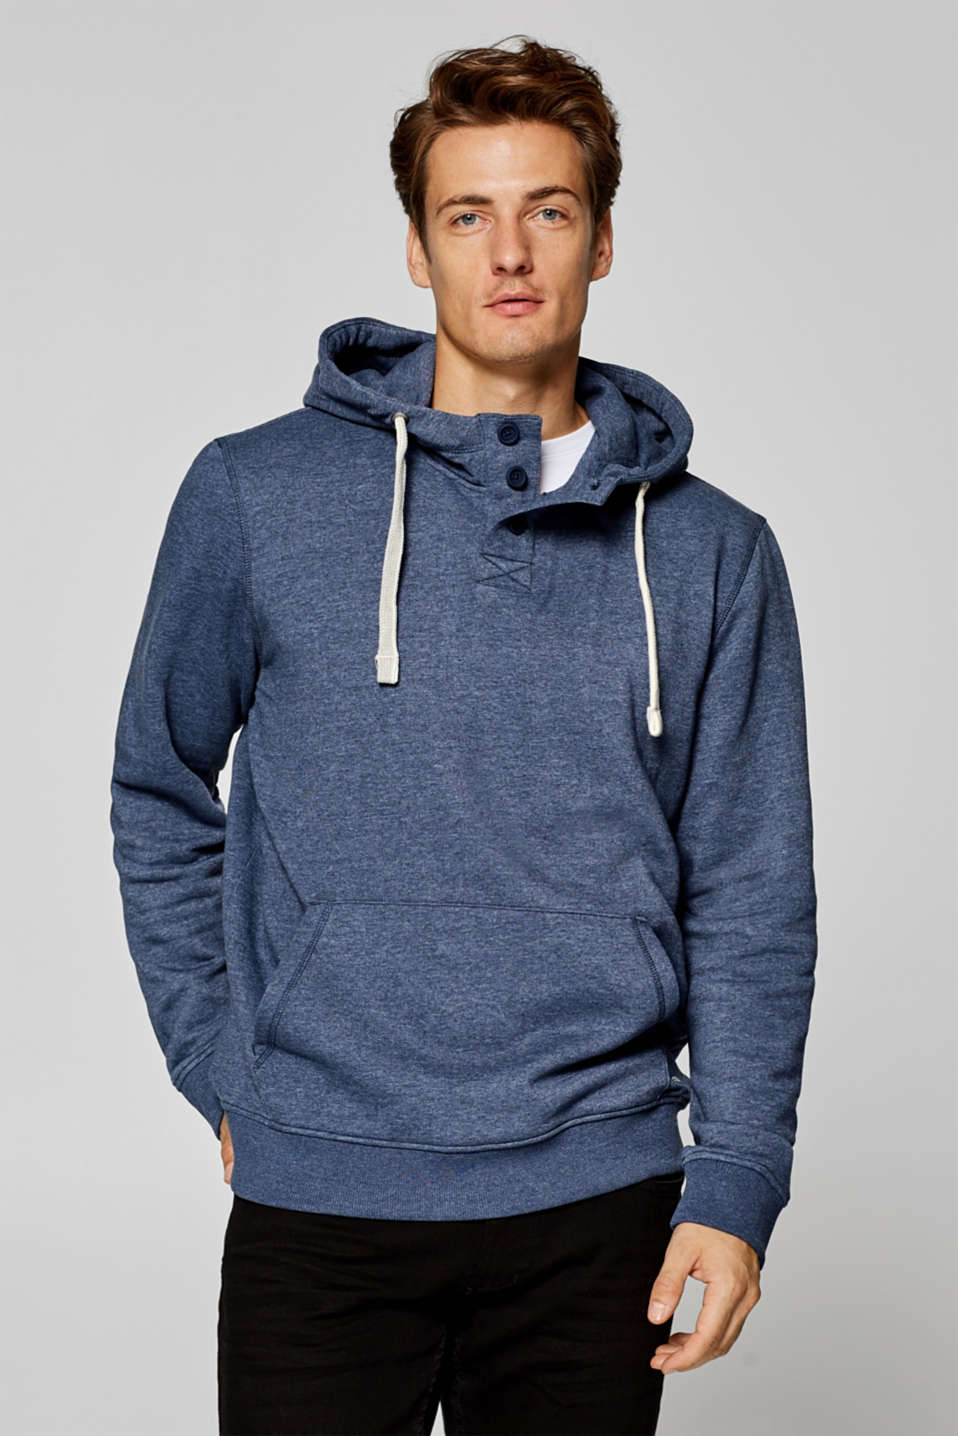 Esprit - Hoodie with a button placket, cotton blend